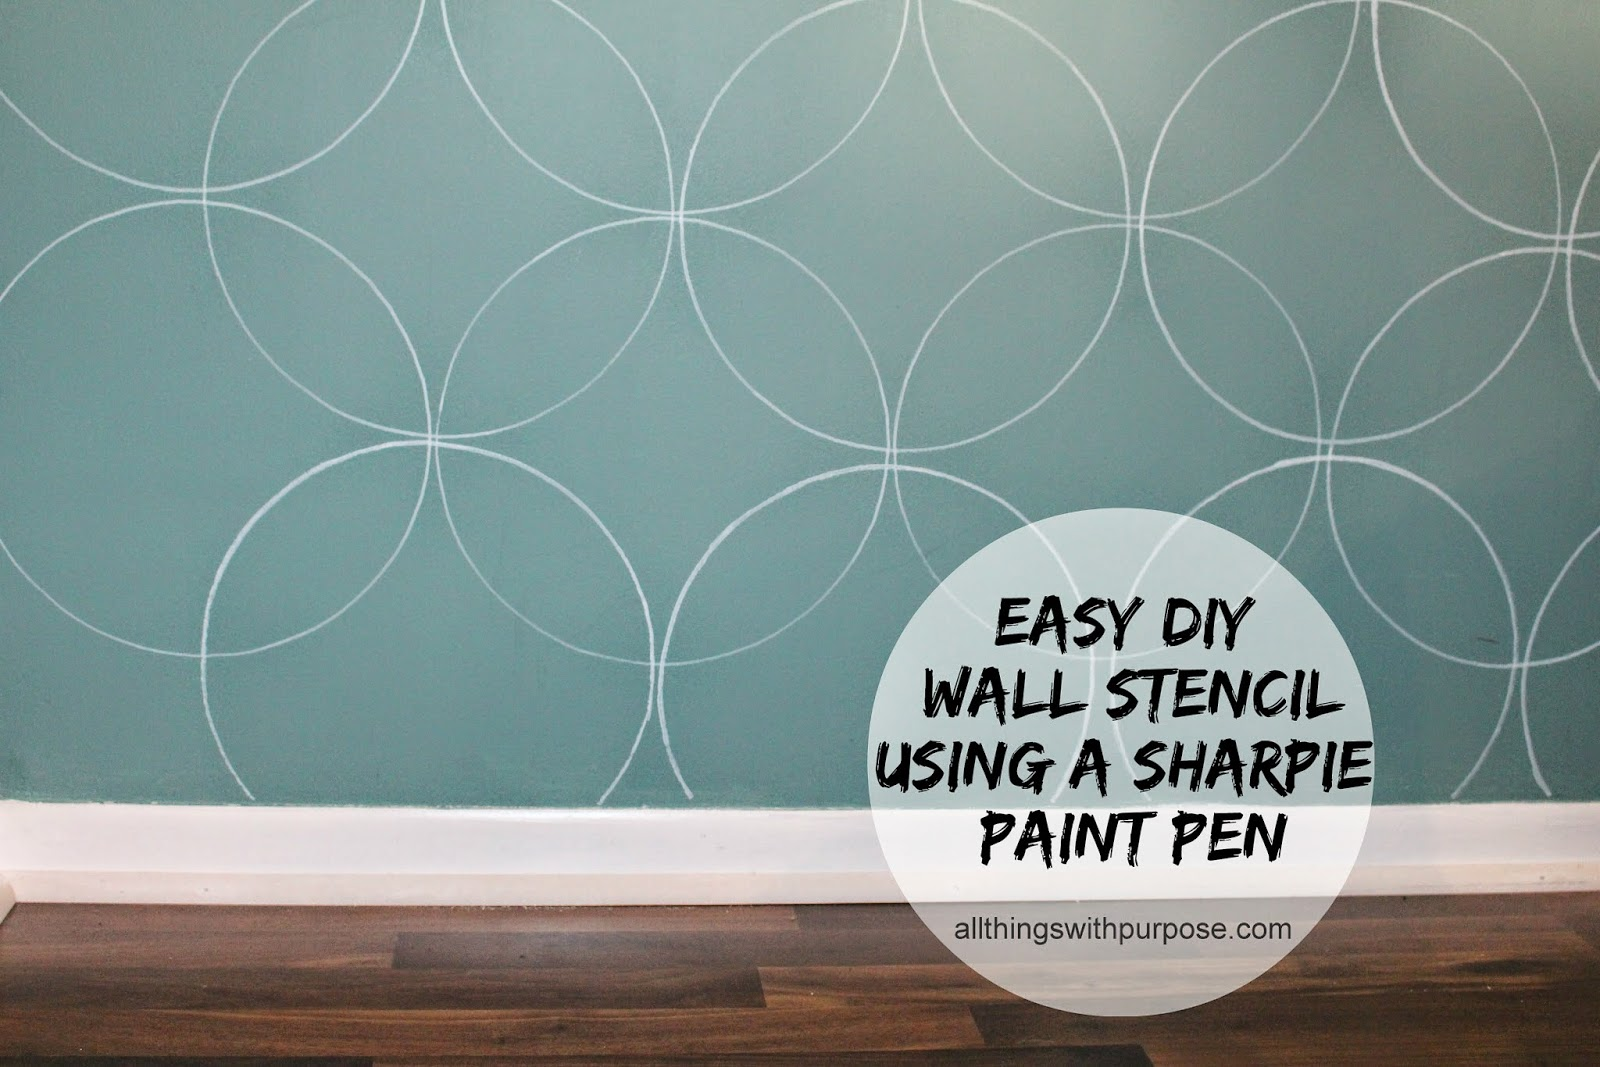 Simple Wall Designs Stencils Easy Diy Wall Stencil With A Paint Pen